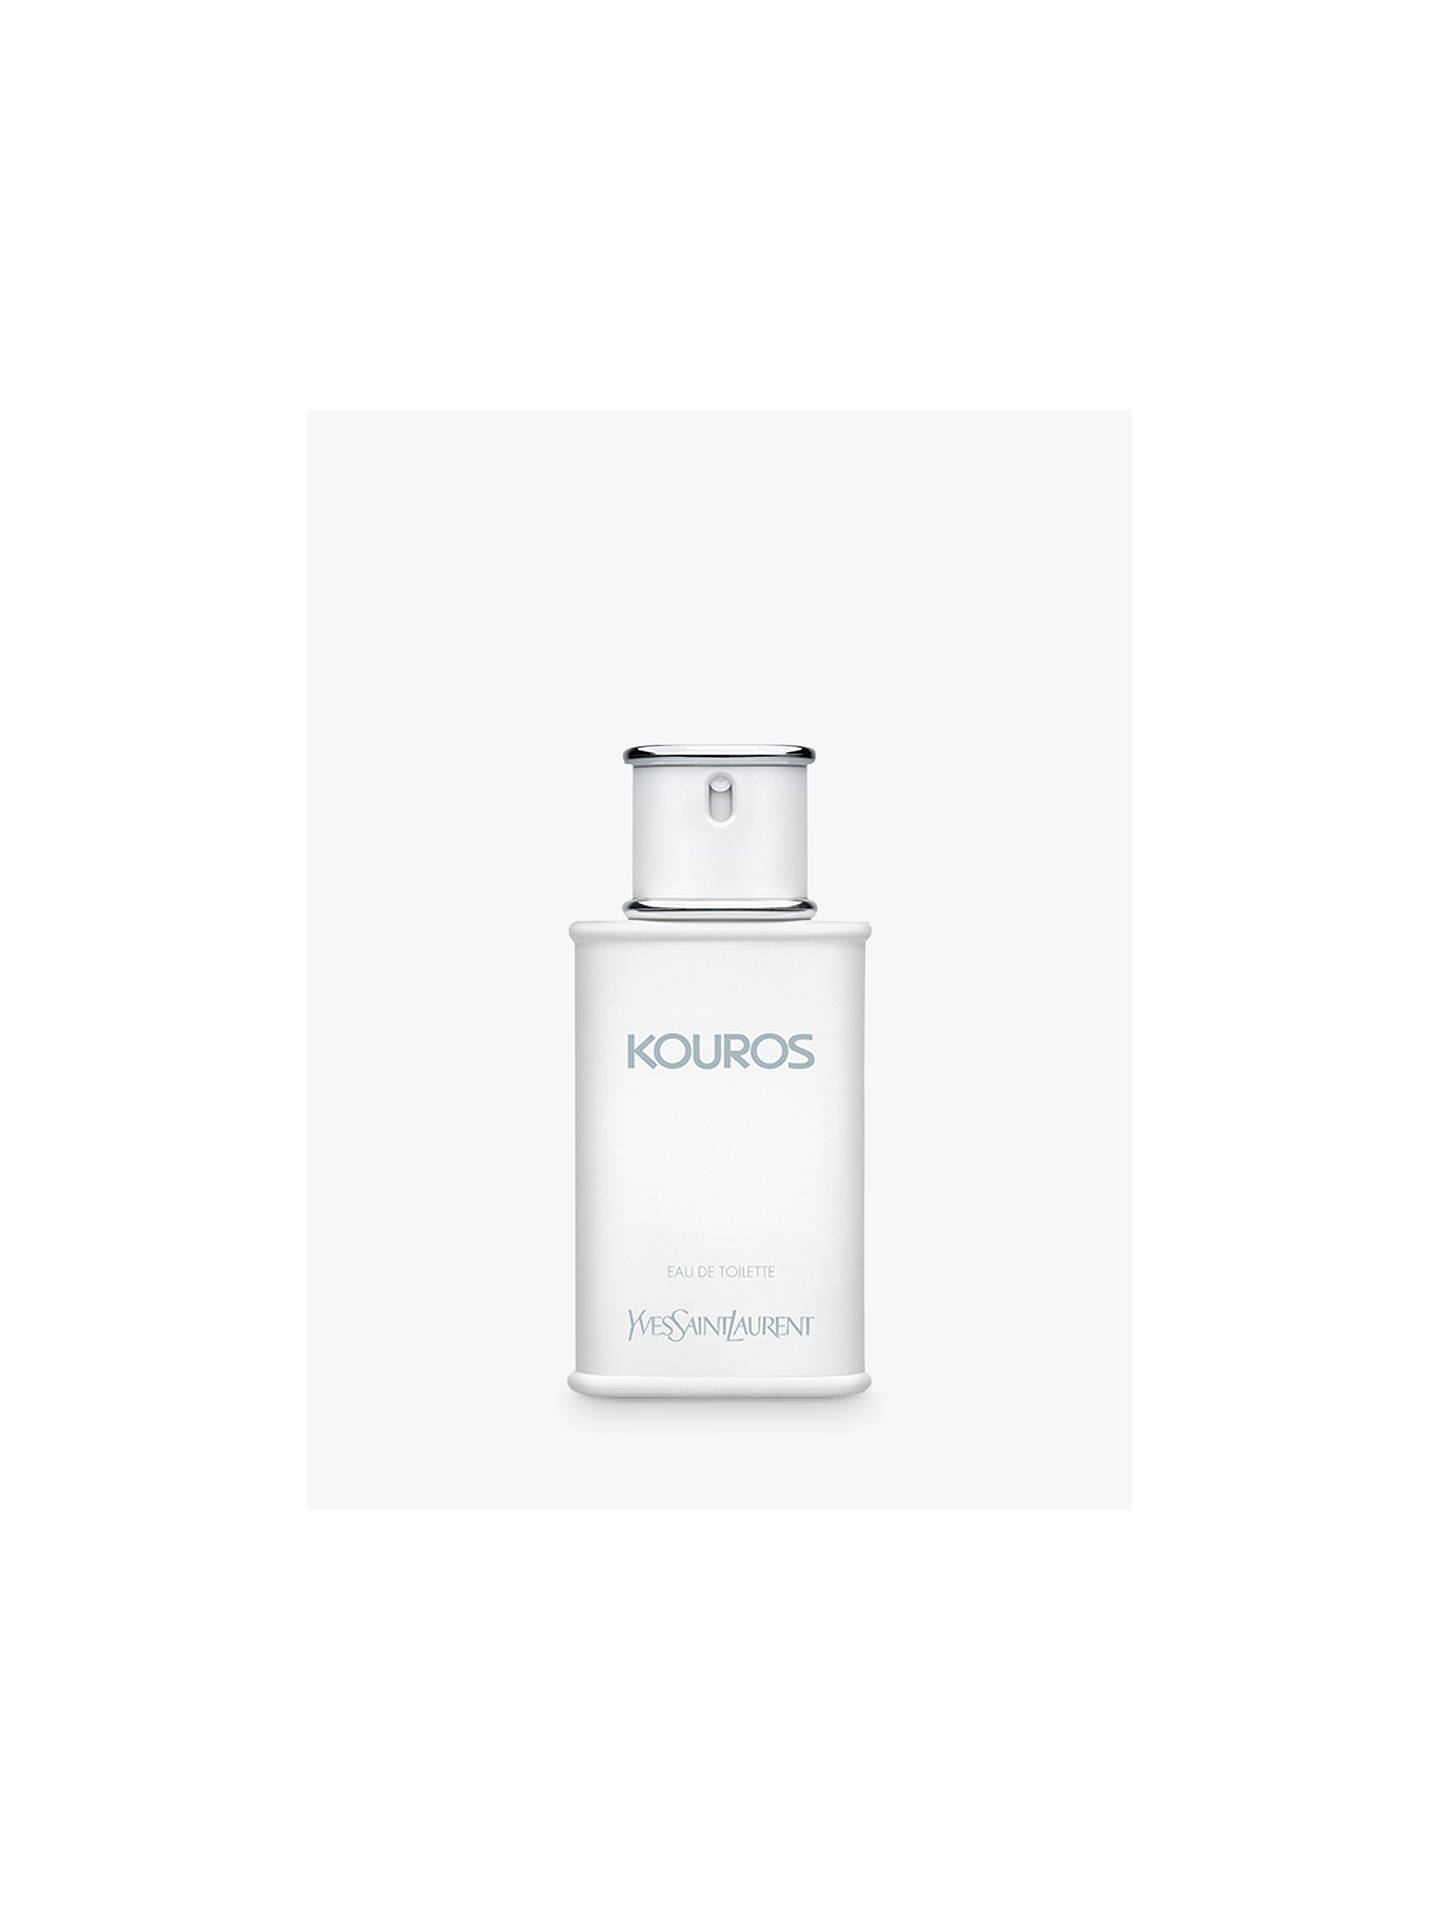 6c2cdef122d Buy Yves Saint Laurent Kouros Eau de Toilette Natural Spray, 50ml Online at  johnlewis.